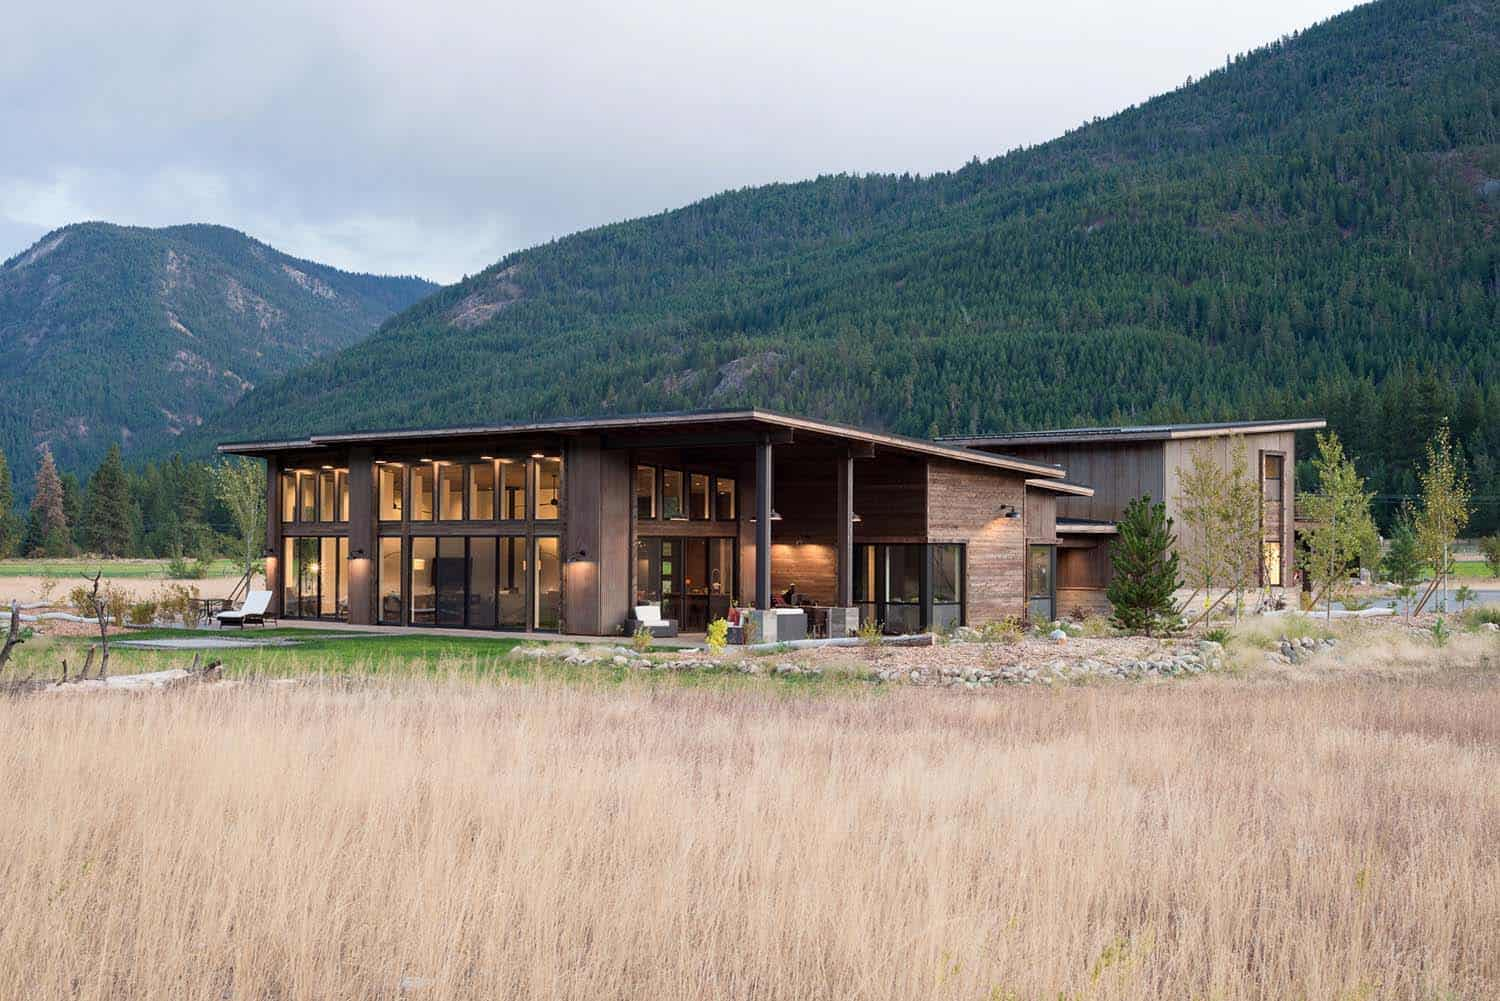 Modern-rustic home designed to withstand wildfires in the North Cascades